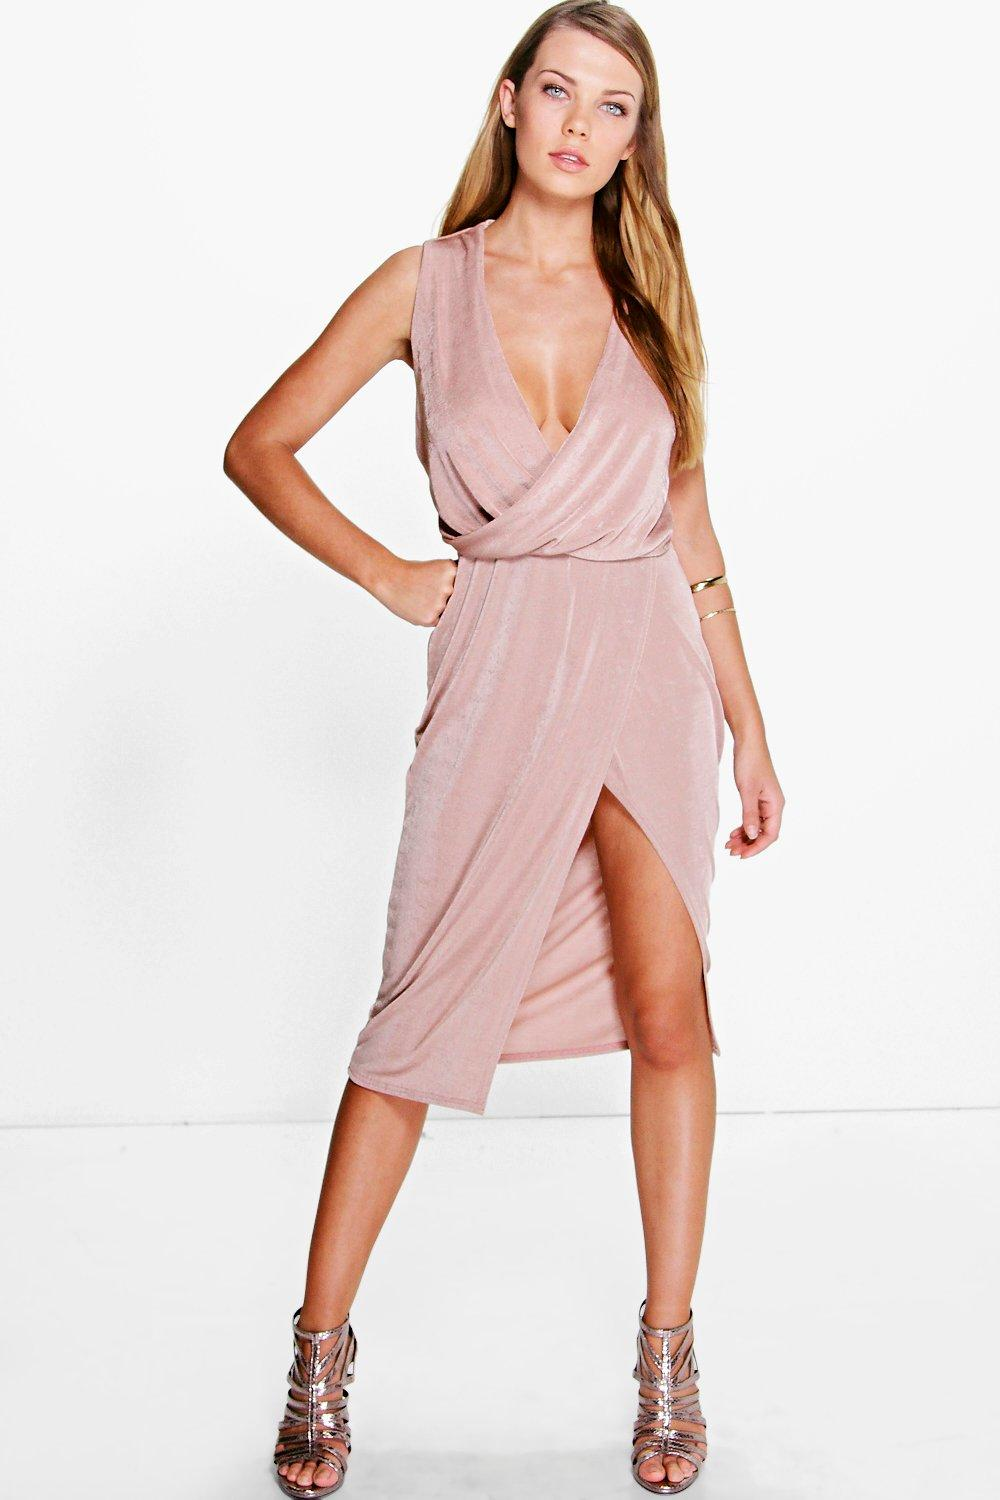 Hadley Slinky Drape & Wrap Skirt Midi Dress at boohoo.com